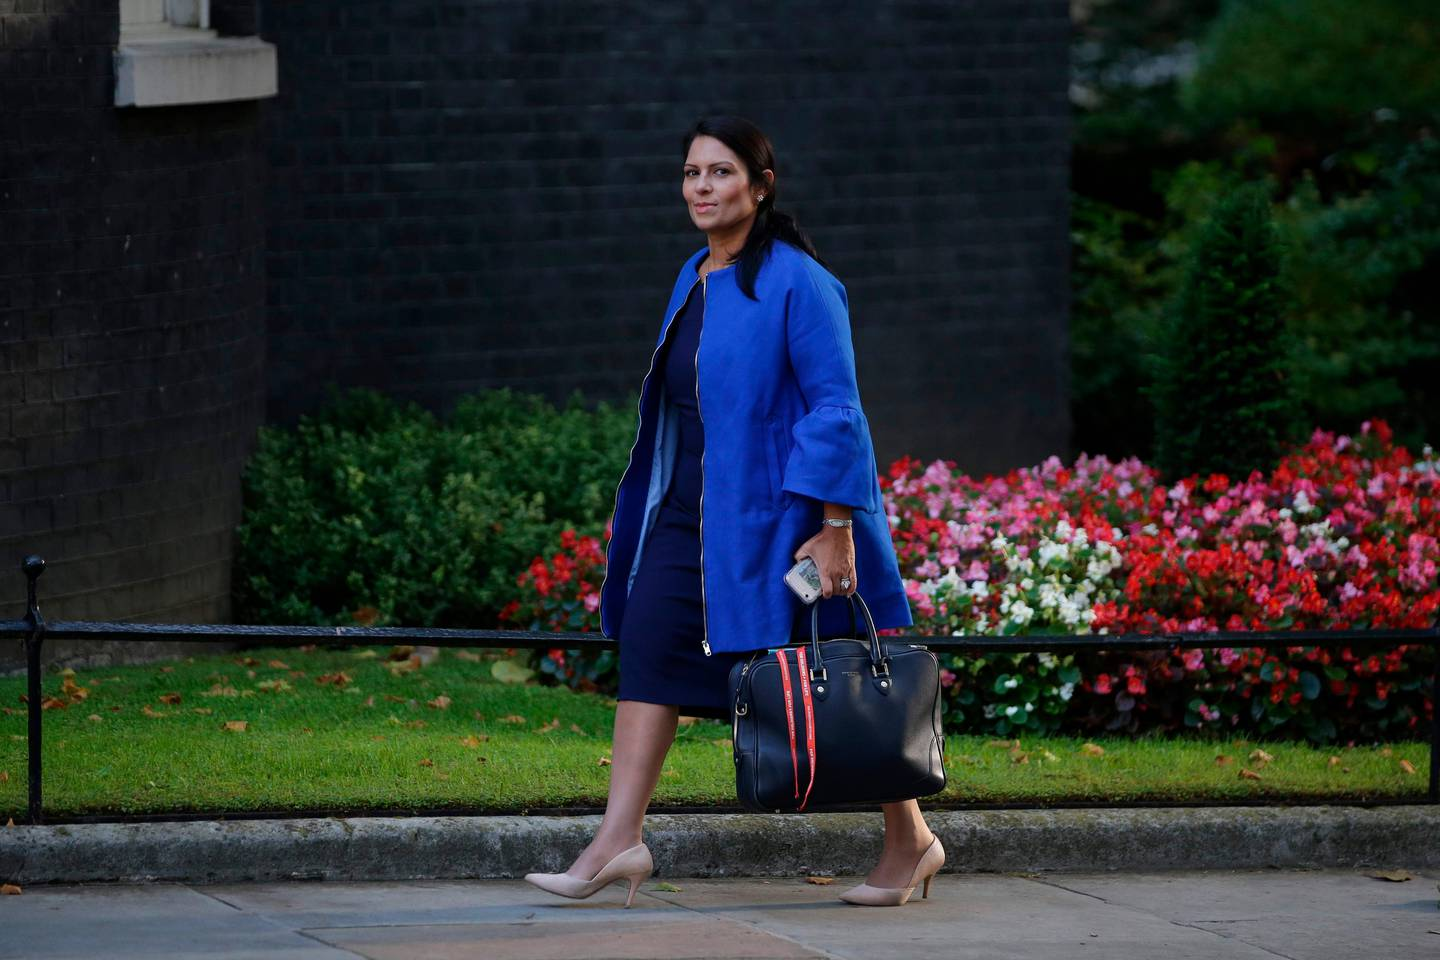 (FILES) This file photo taken on September 12, 2017 shows Britain's International Development Secretary Priti Patel arriving to attend the weekly meeting of the cabinet at Downing Street in central London.  British Prime Minister Theresa May summoned her aid minister, International Development Secretary Priti Patel, back from a trip to Africa on November 8, 2017, following a row over unauthorised meetings in Israel, prompting speculation she will be the second minister in a week to be sacked. / AFP PHOTO / Daniel LEAL-OLIVAS